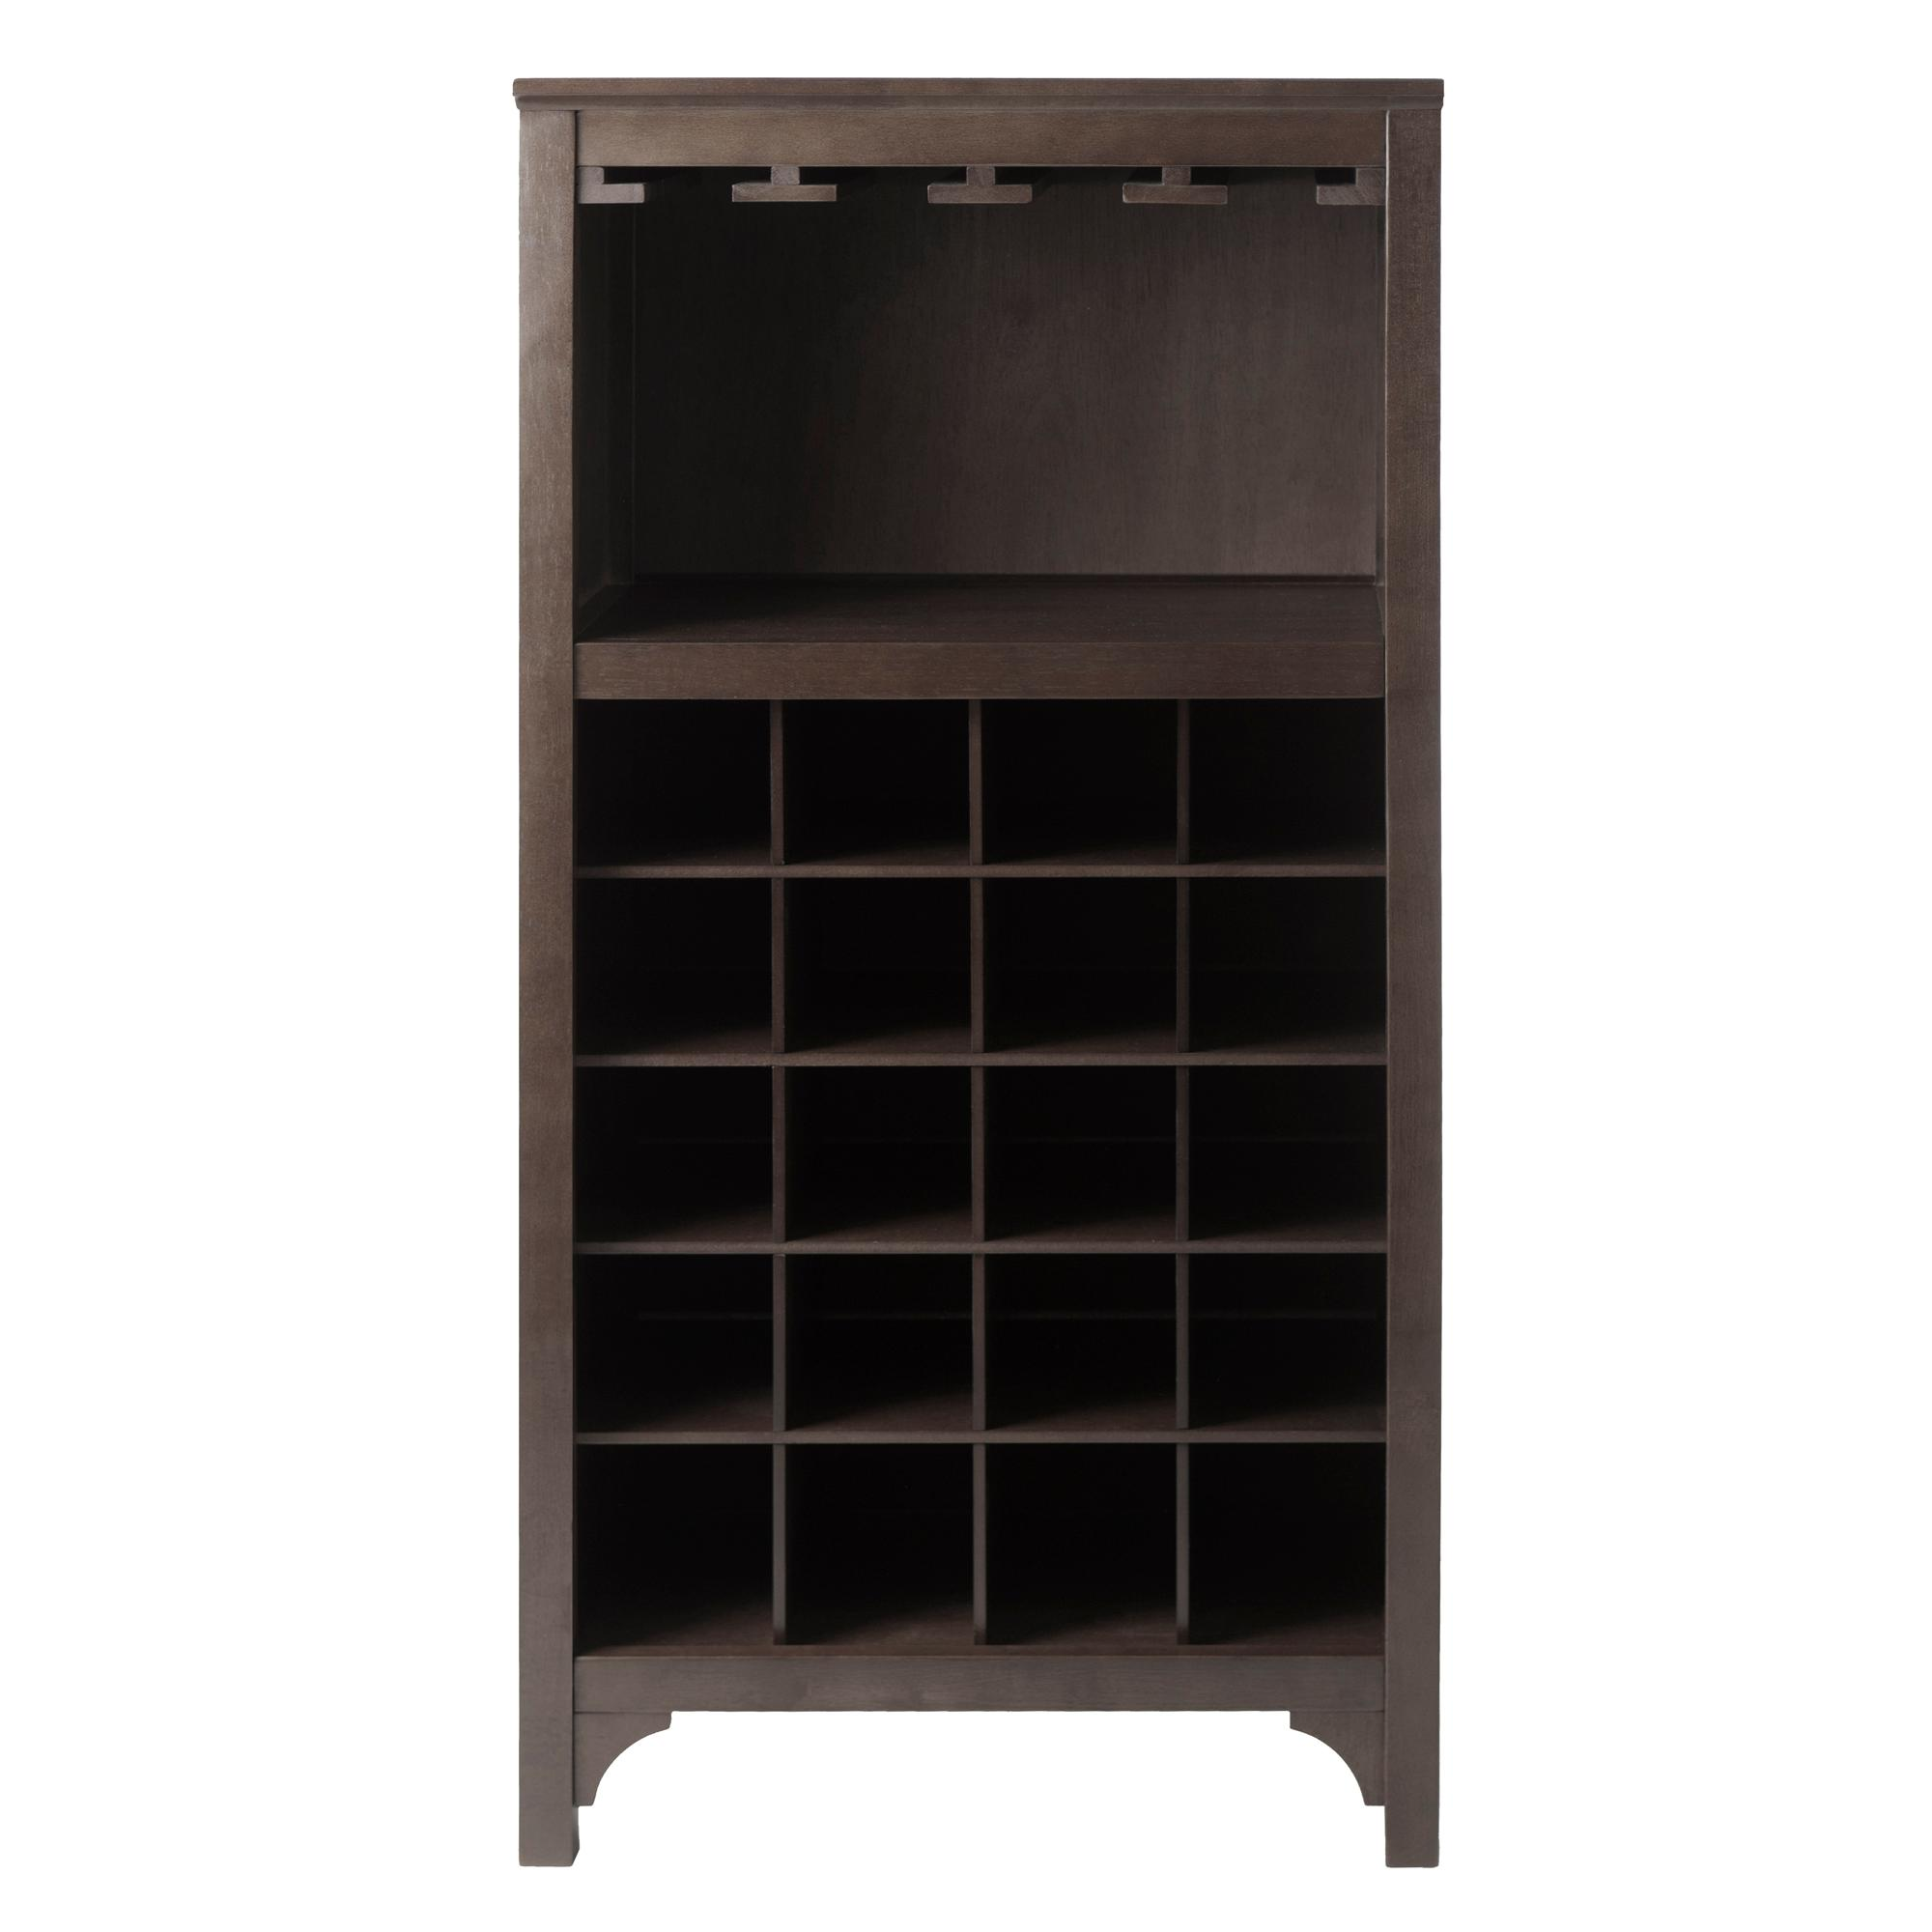 Winsome Ancona Wine Cabinet With Glass Rack Kitchen Dining